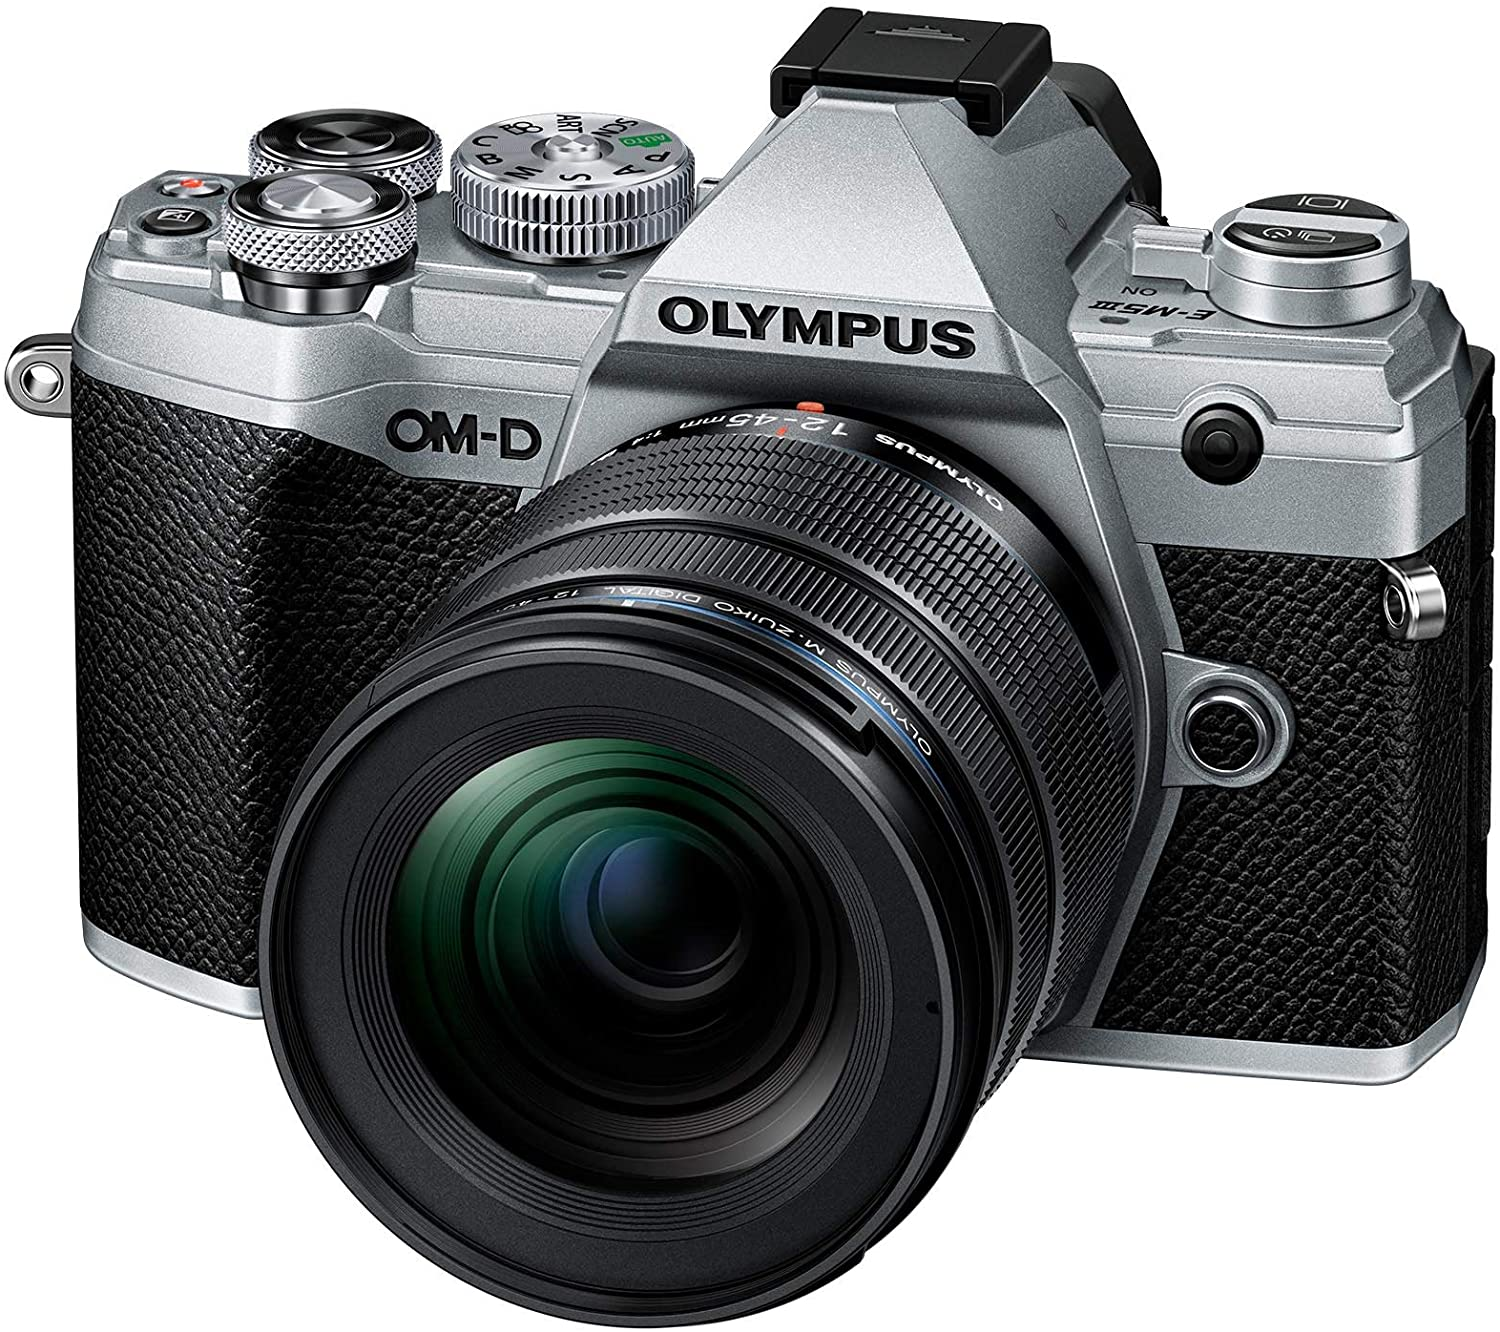 Olympus OM-D E-M5 Mark III Mirrorless with 12-45mm Lens - Silver